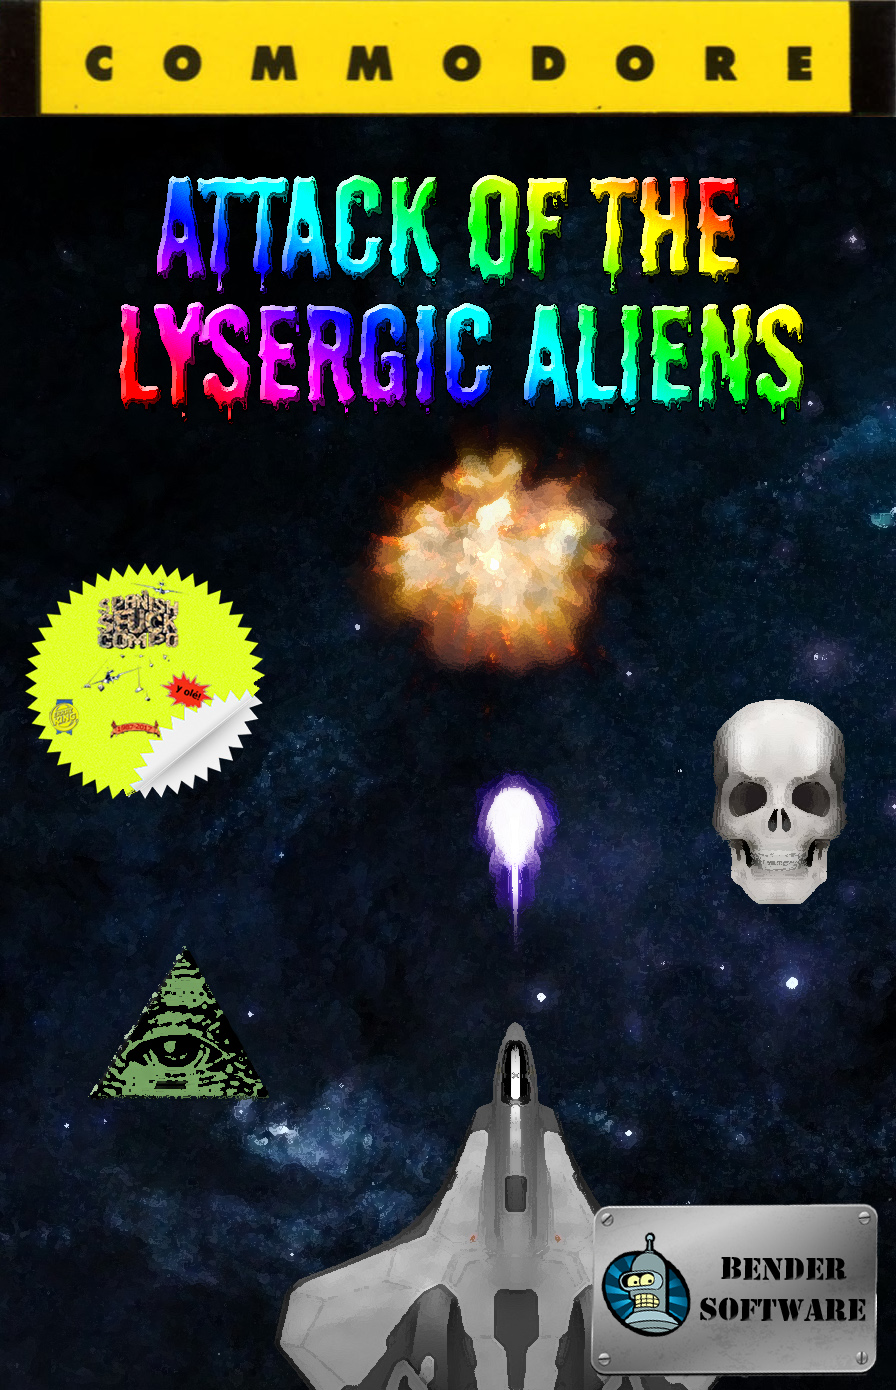 Attack of the Lysergic Aliens